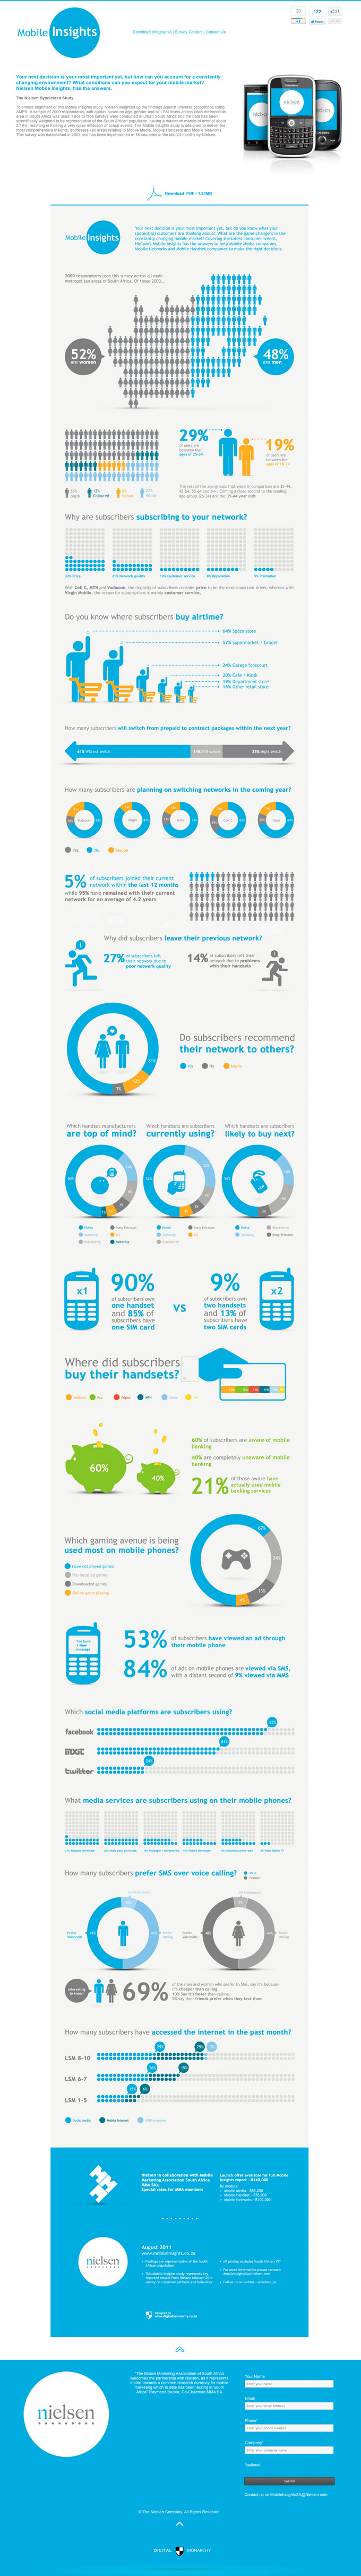 nielsen_mobile_insights_01